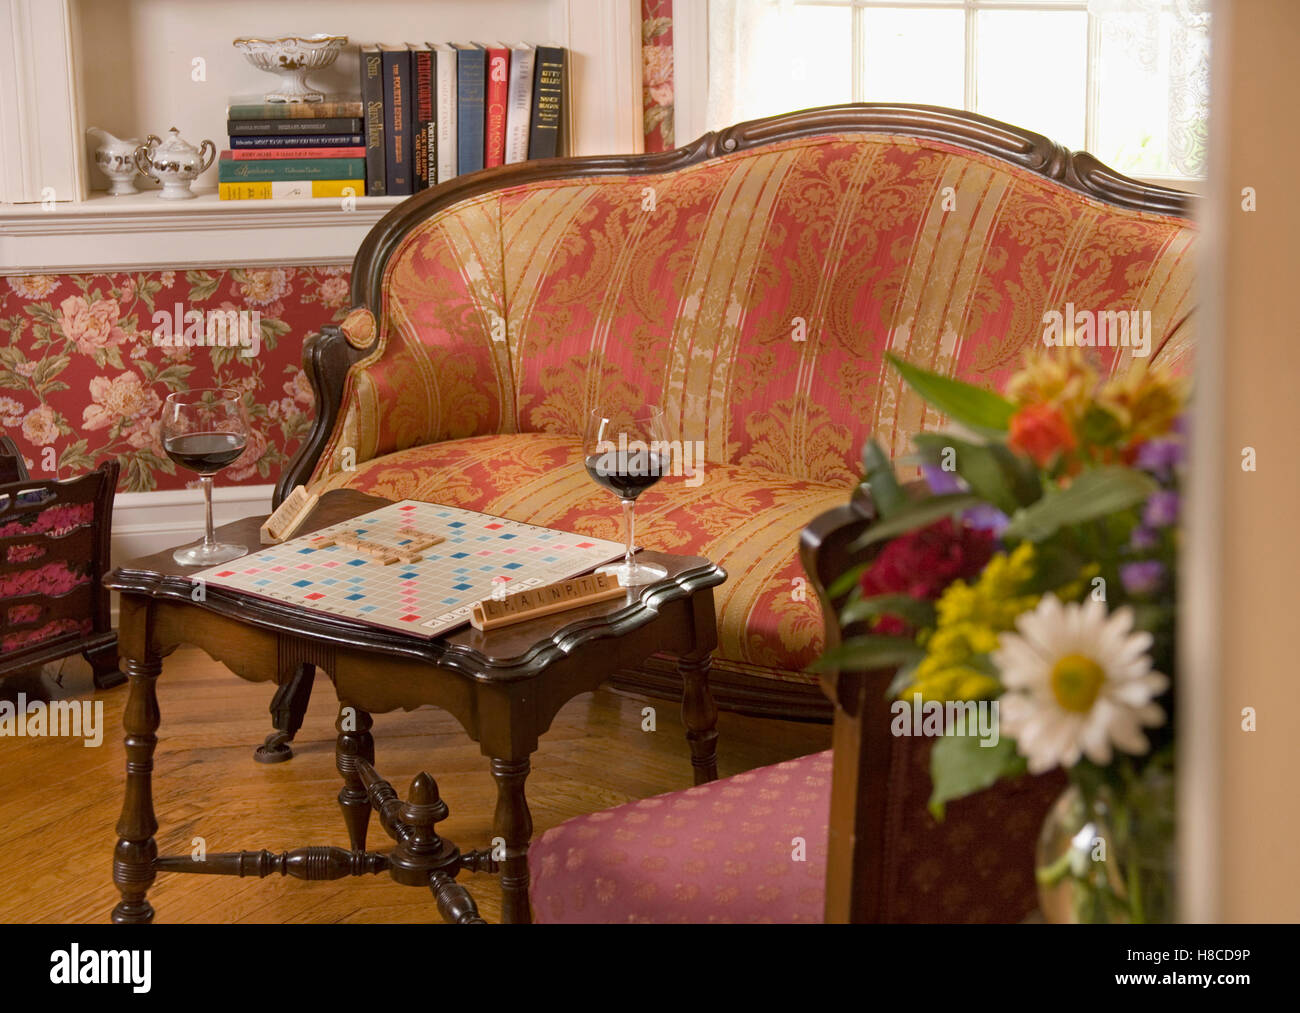 Wood framed sofa with red upholstery, game of scrabble and two glasses of red wine on small table. - Stock Image